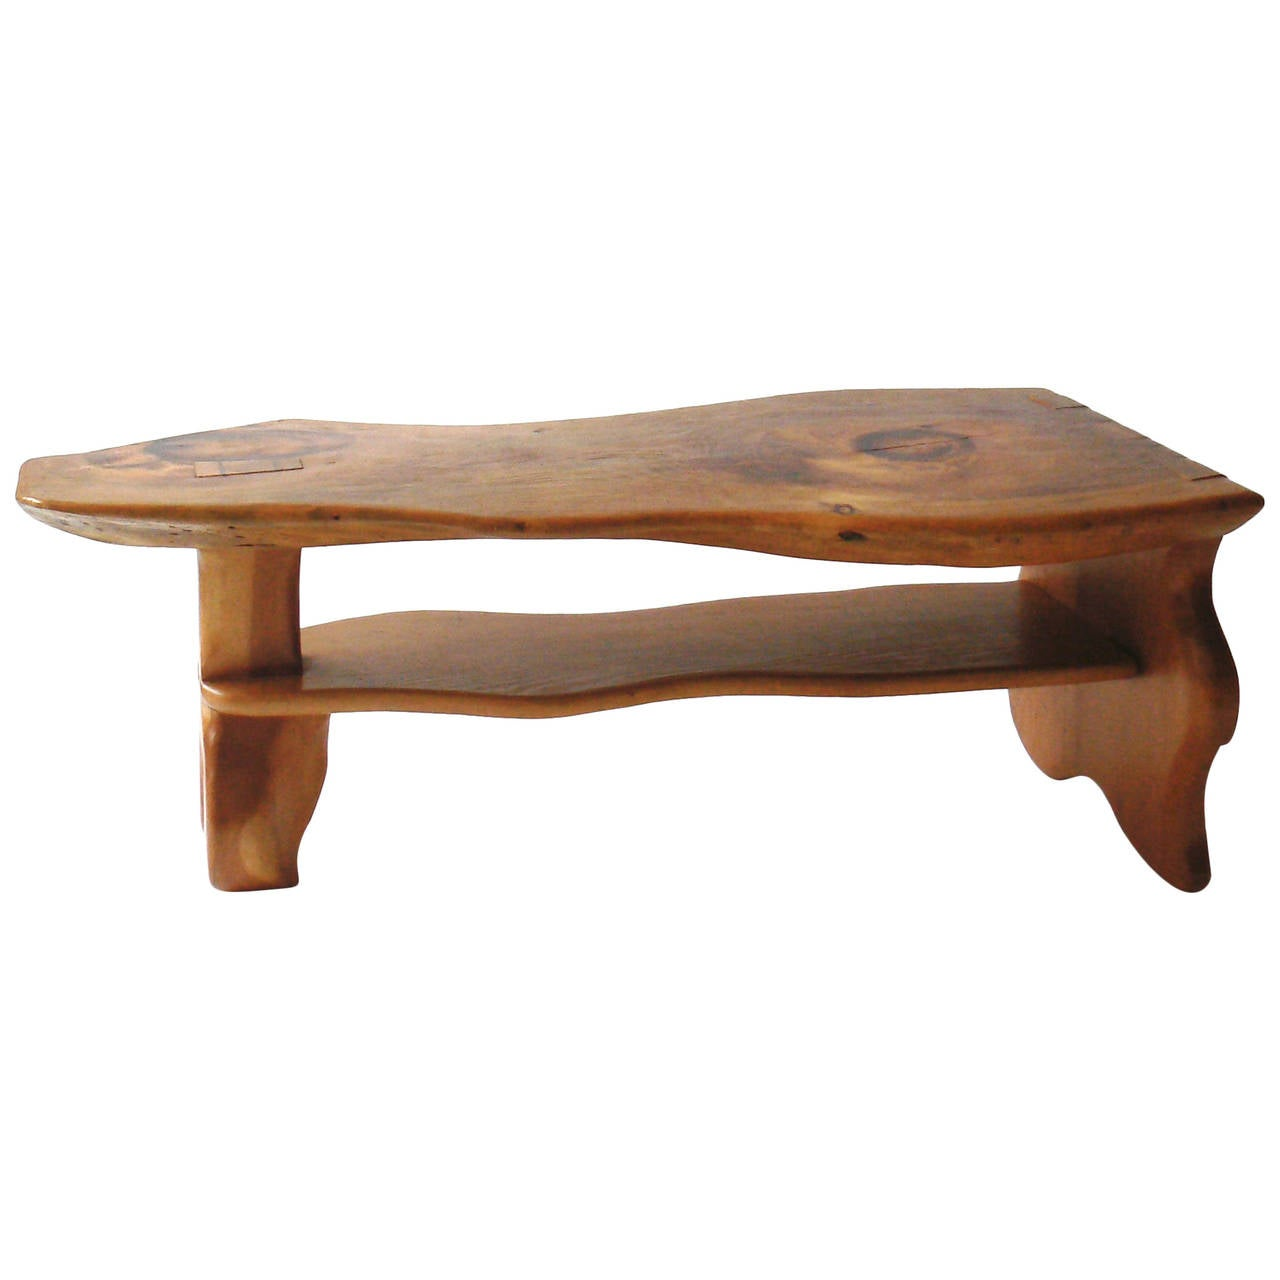 Carved live edge coffee table manner of alexandre noll for sale at 1stdibs Live wood coffee table